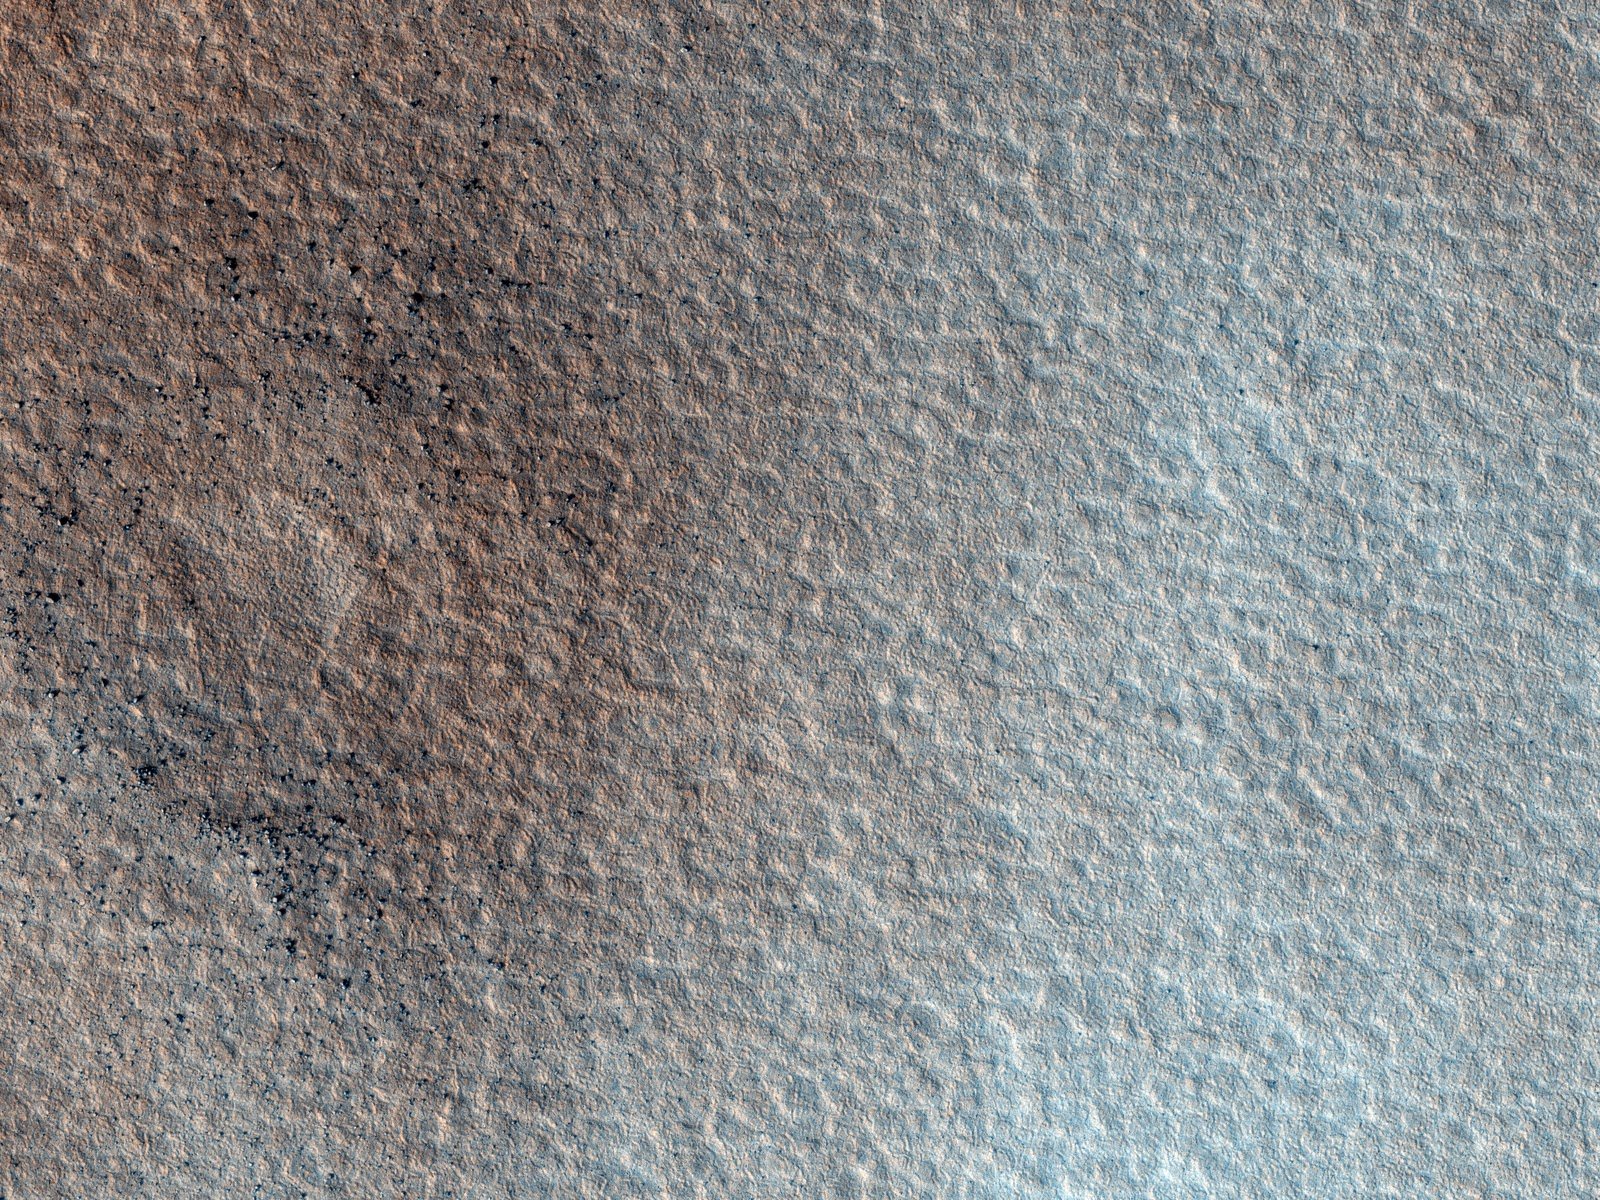 The gentle plains of Arcadia planitia